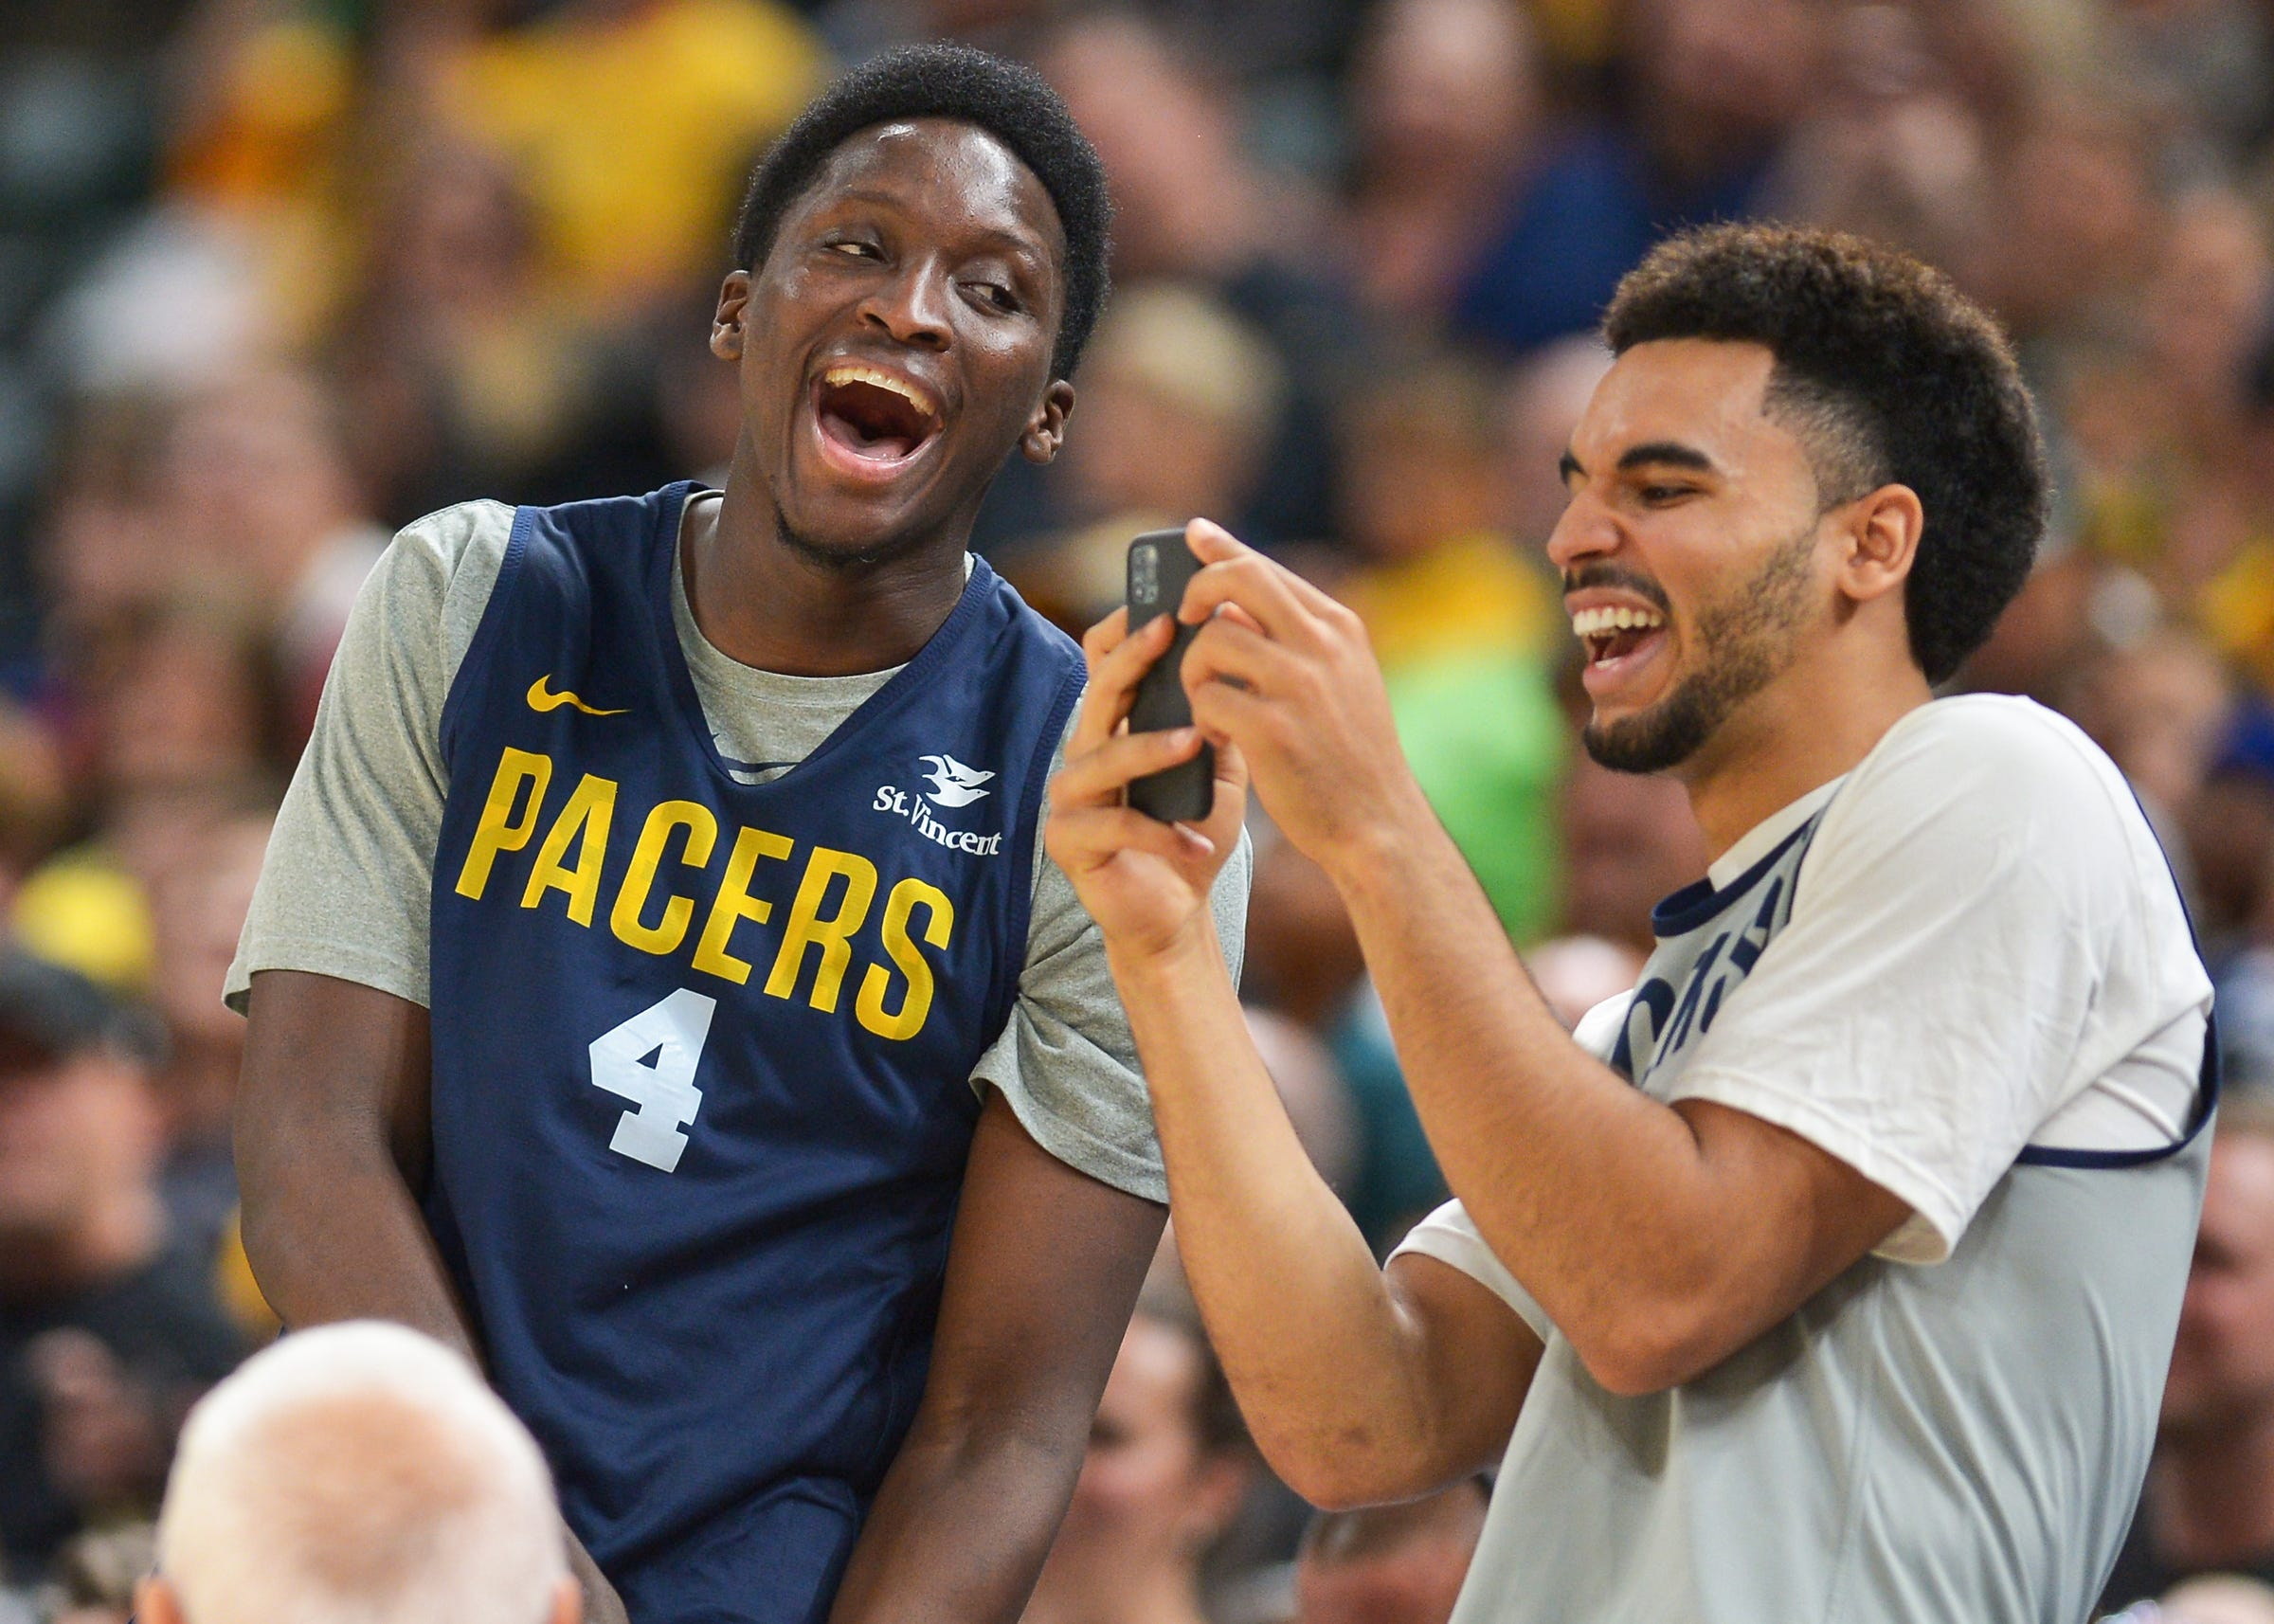 Photos: Pacers show love, have fun at FanJam